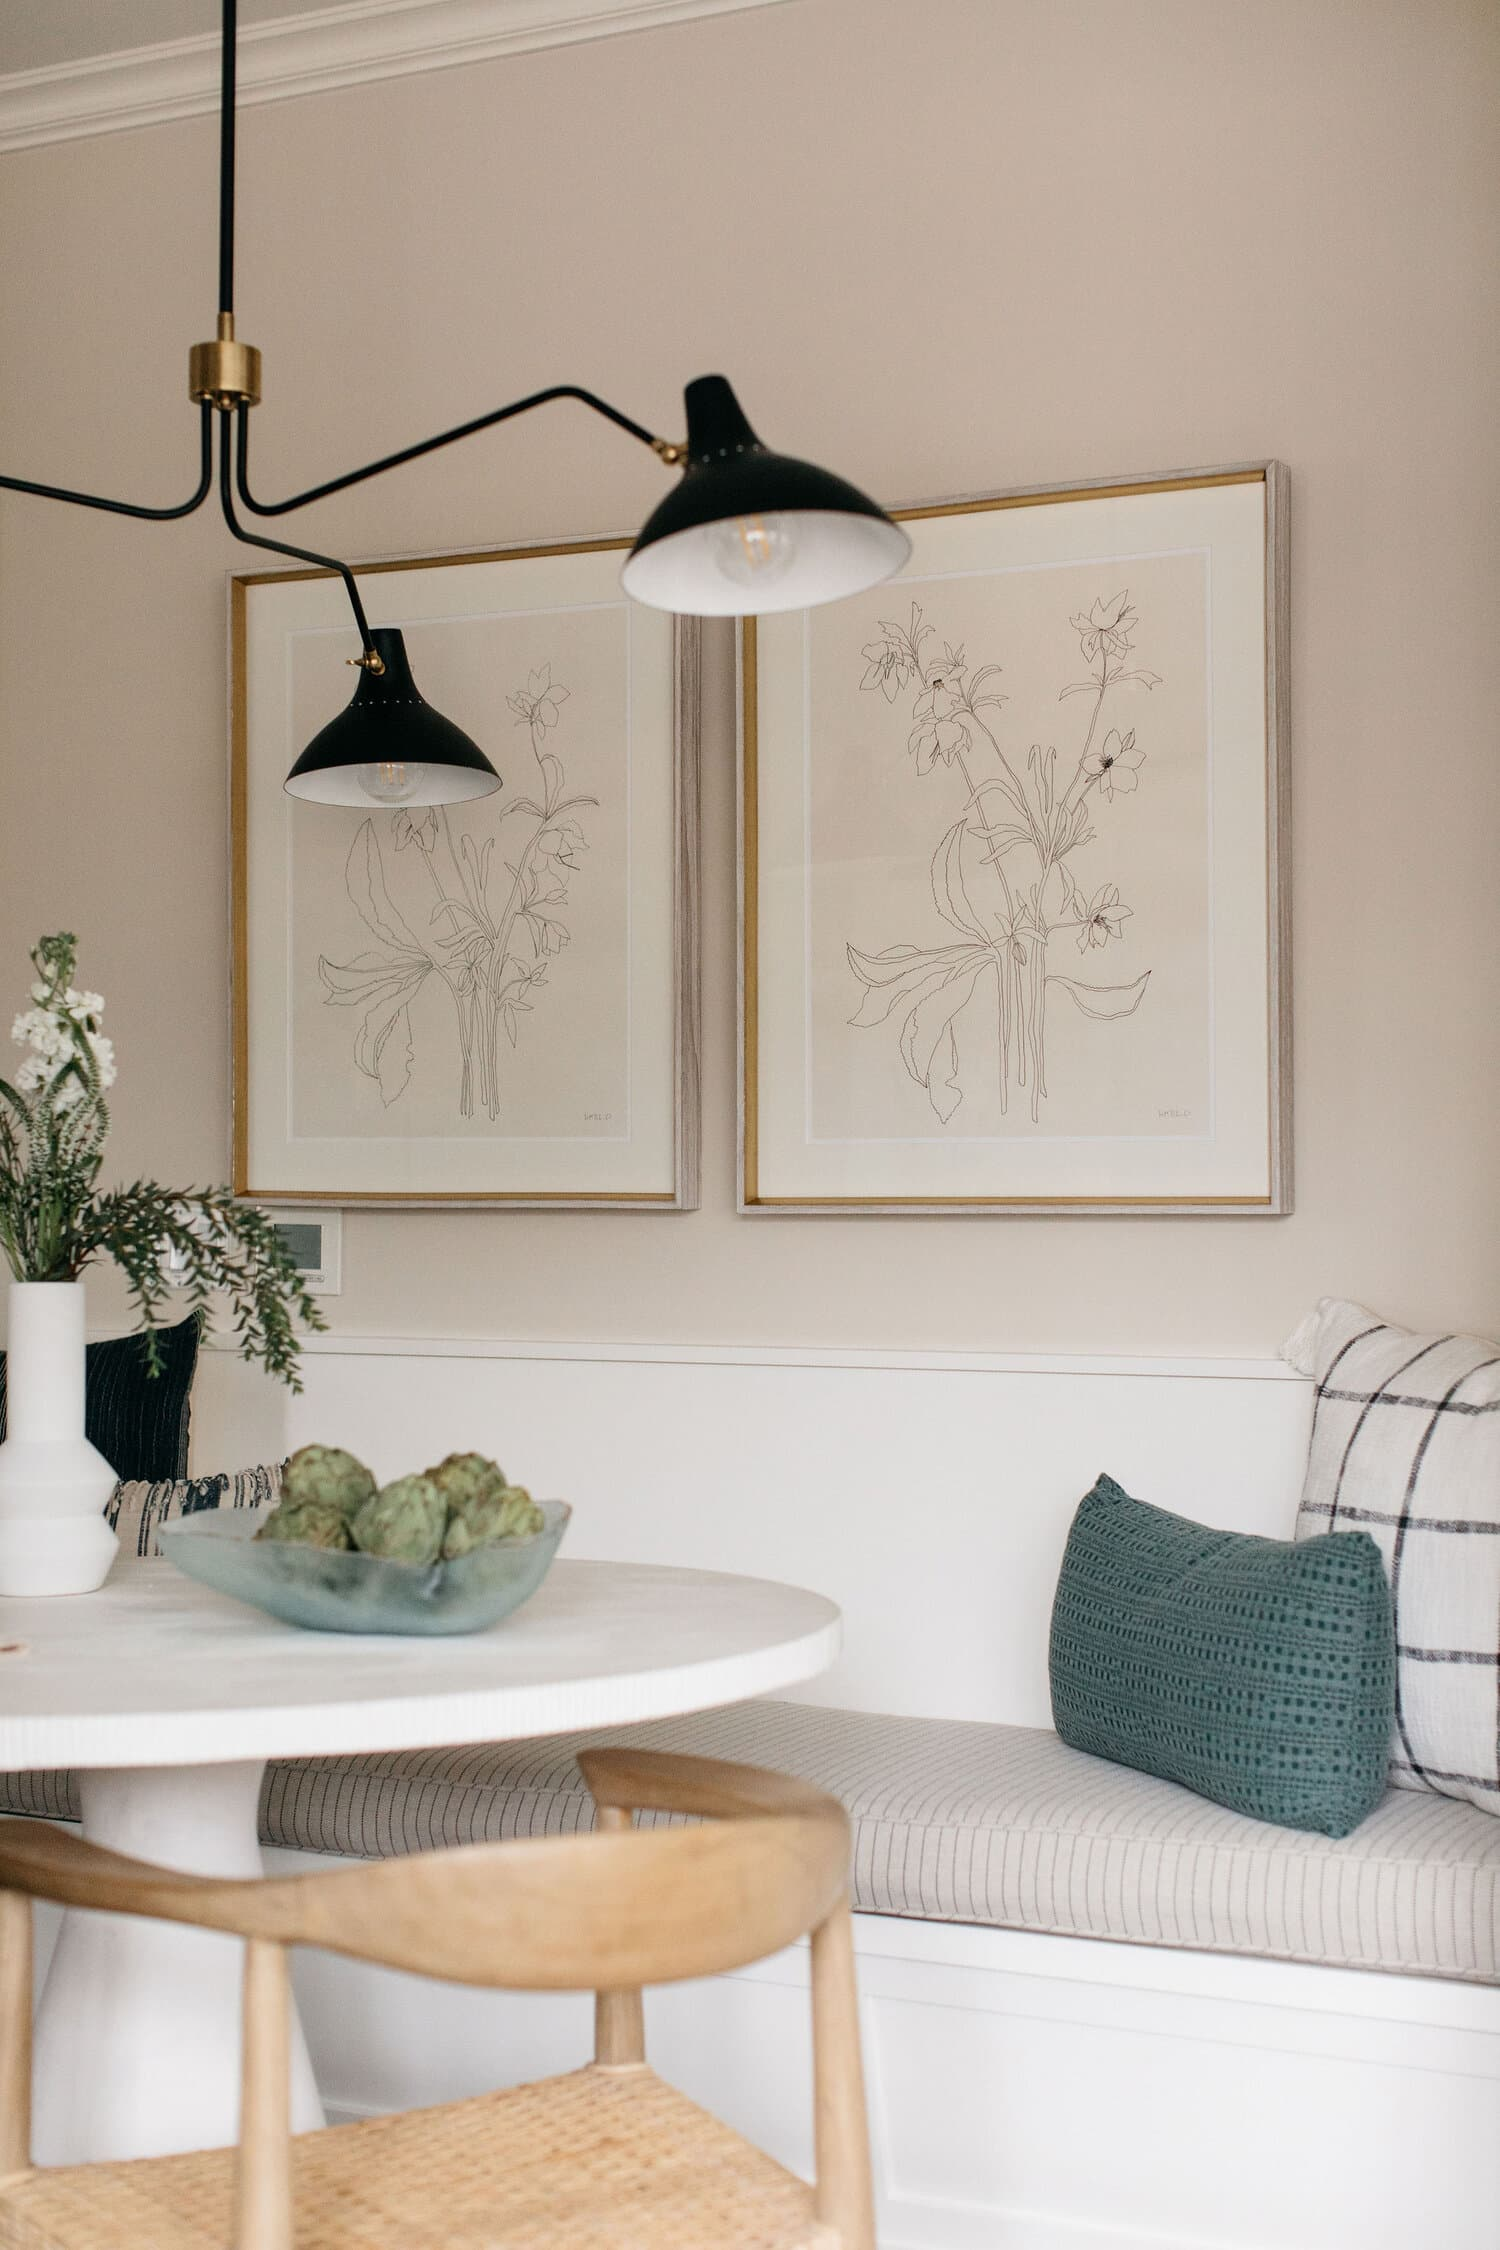 this is a breakfast nook with a pale cream shade inspired by spring 2021